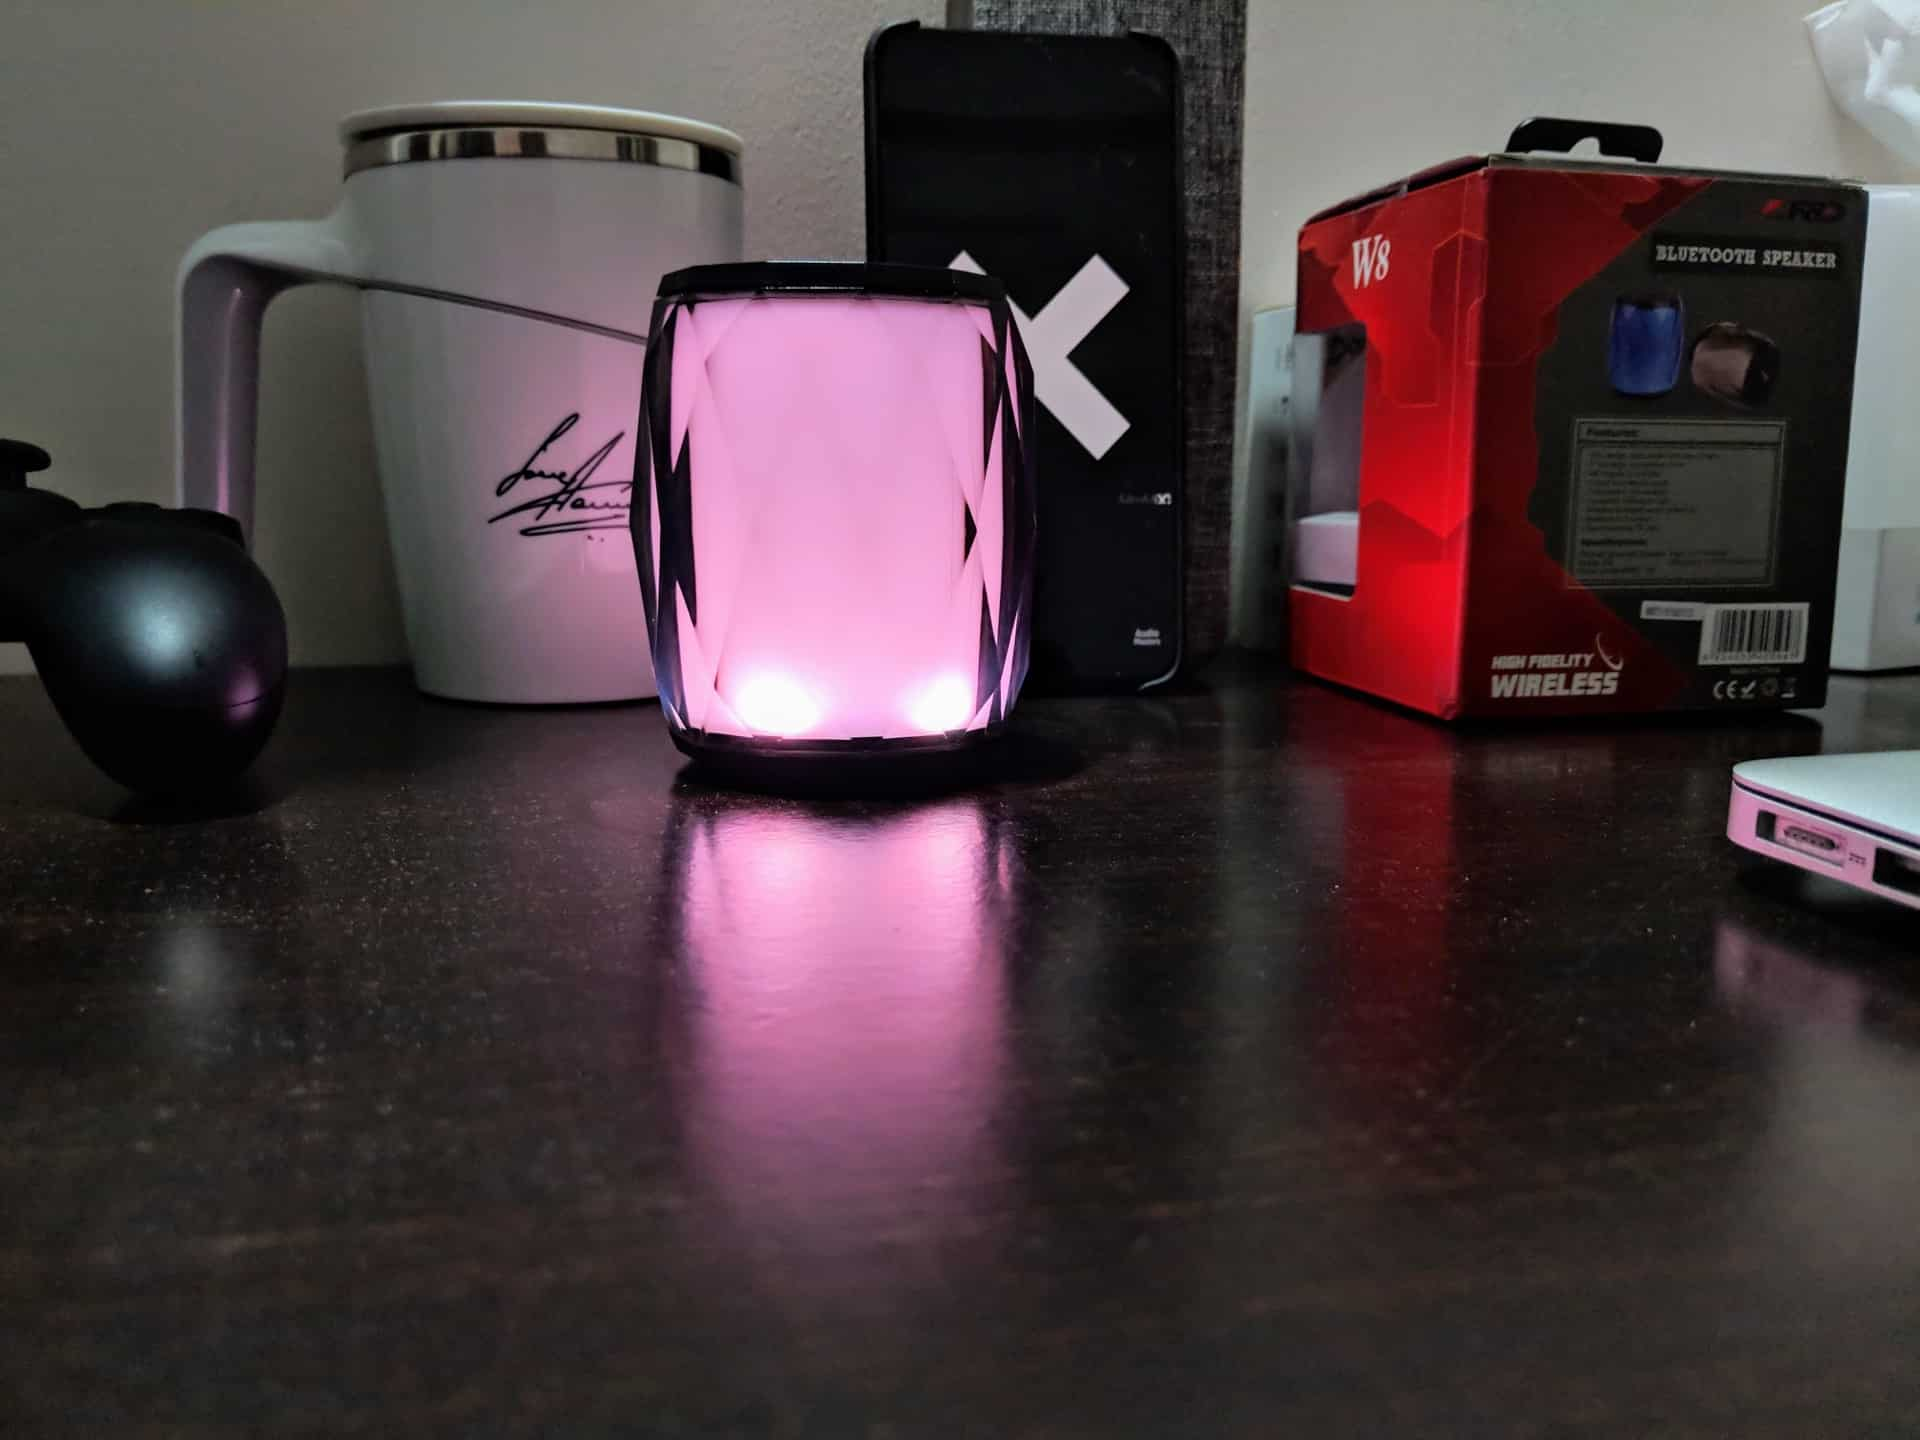 F&D W8 Portable Bluetooth Speaker Review - 10